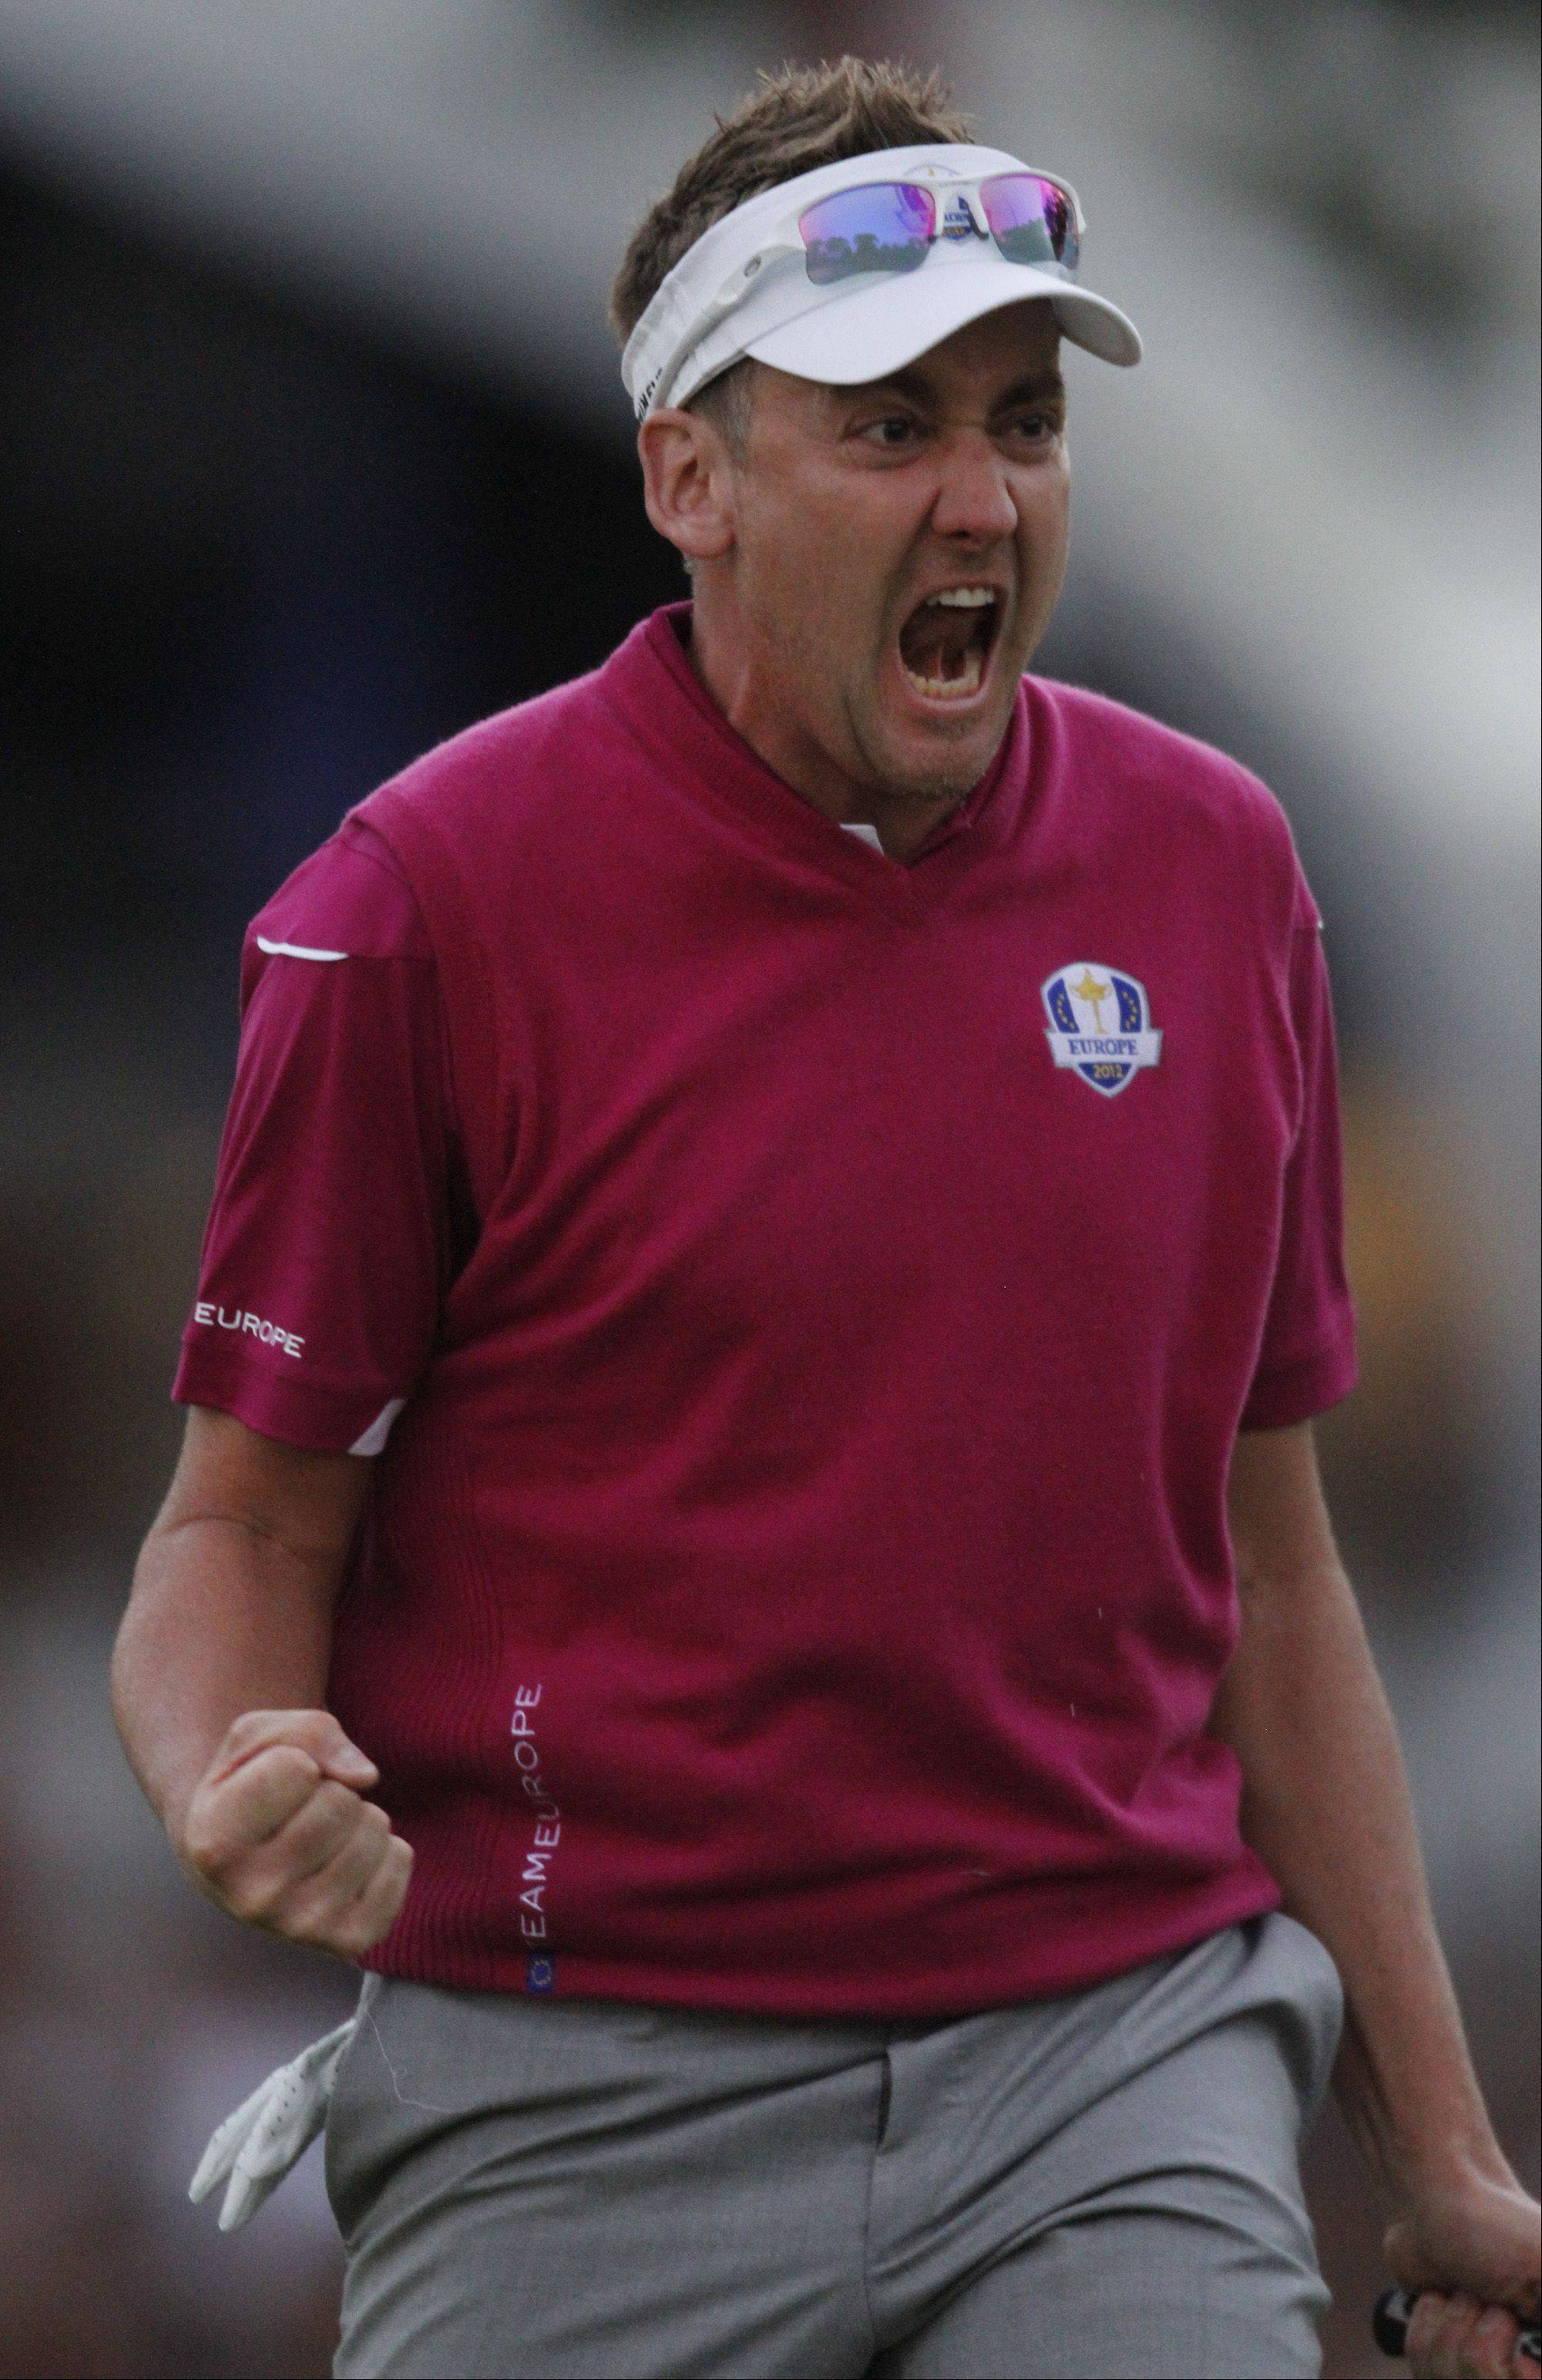 Team Europe's Ian Poulter is pumped after sinking a putt to stay 1 up on Team USA on #18.